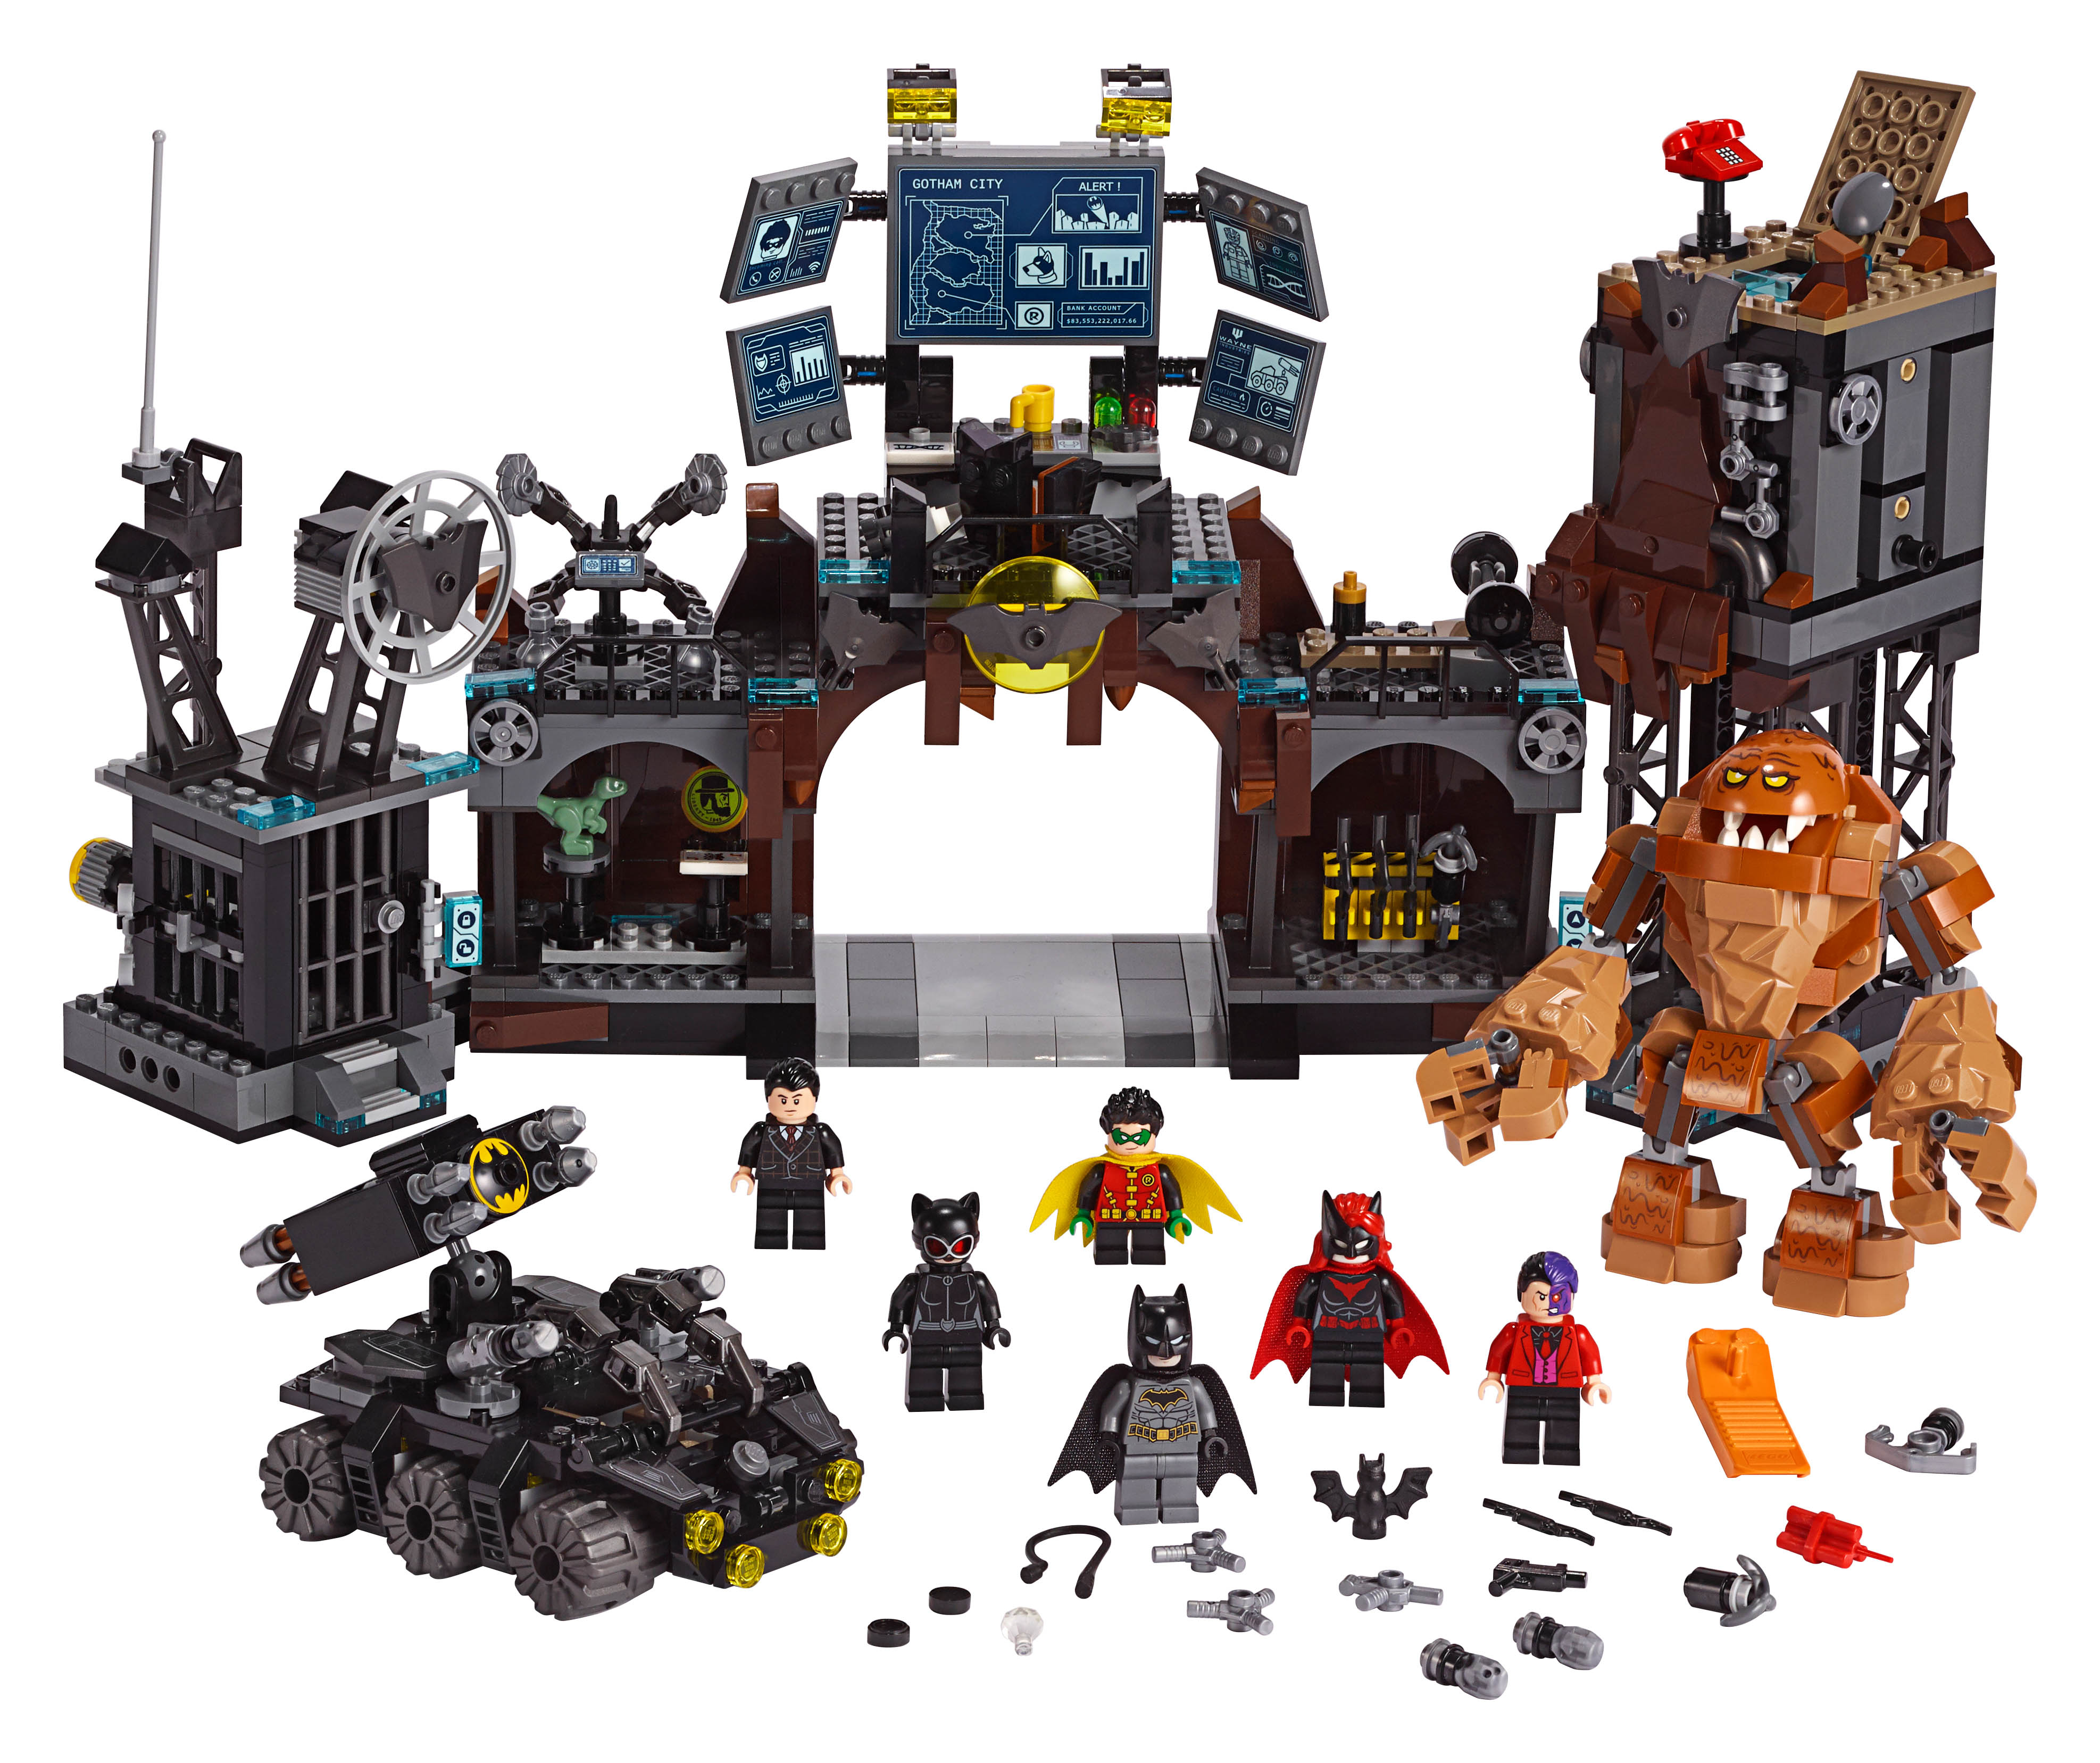 lego celebrates 80 years of batman with new sets the. Black Bedroom Furniture Sets. Home Design Ideas